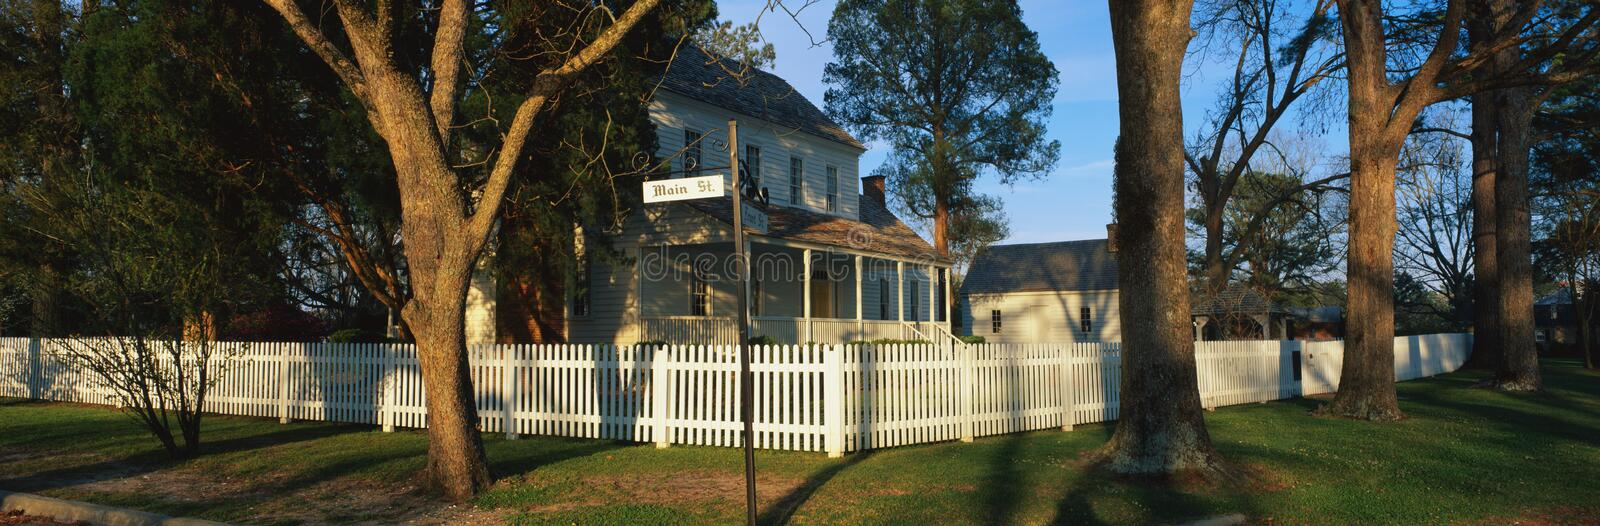 Home with white picket fence on Main Street stock photography